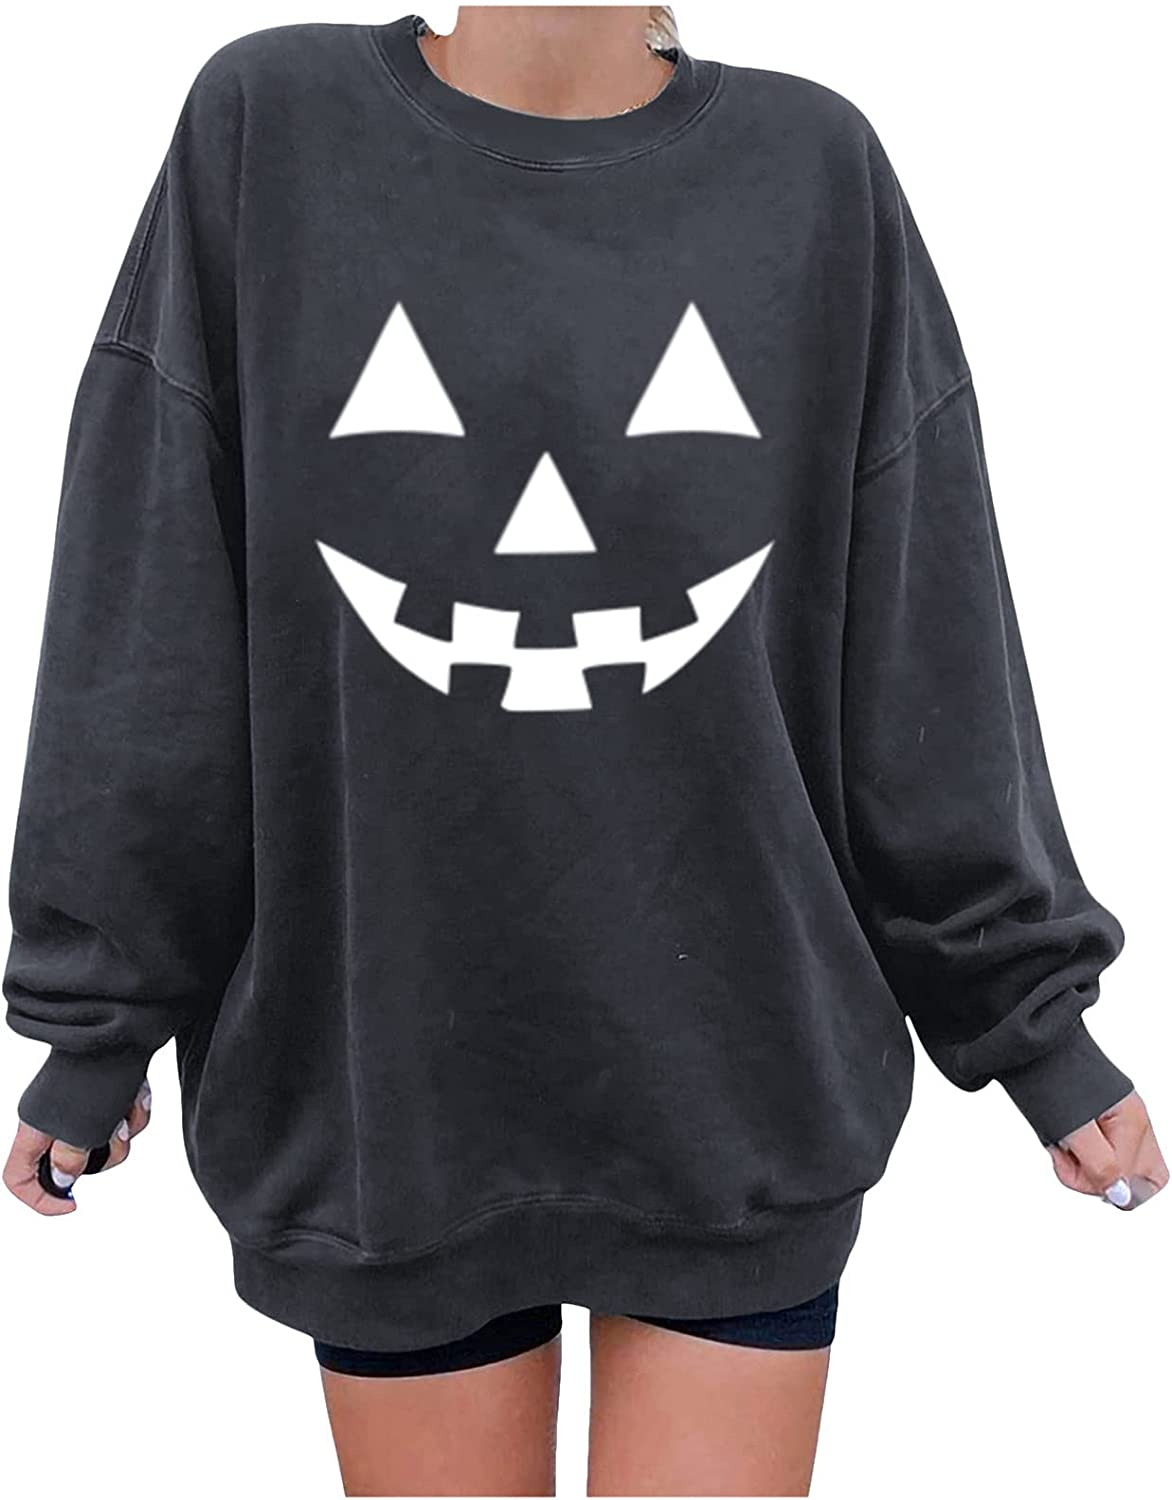 Pandaie Pumpkin Halloween Shirts All items in the store for Max 87% OFF Funny Graphic Casual Women